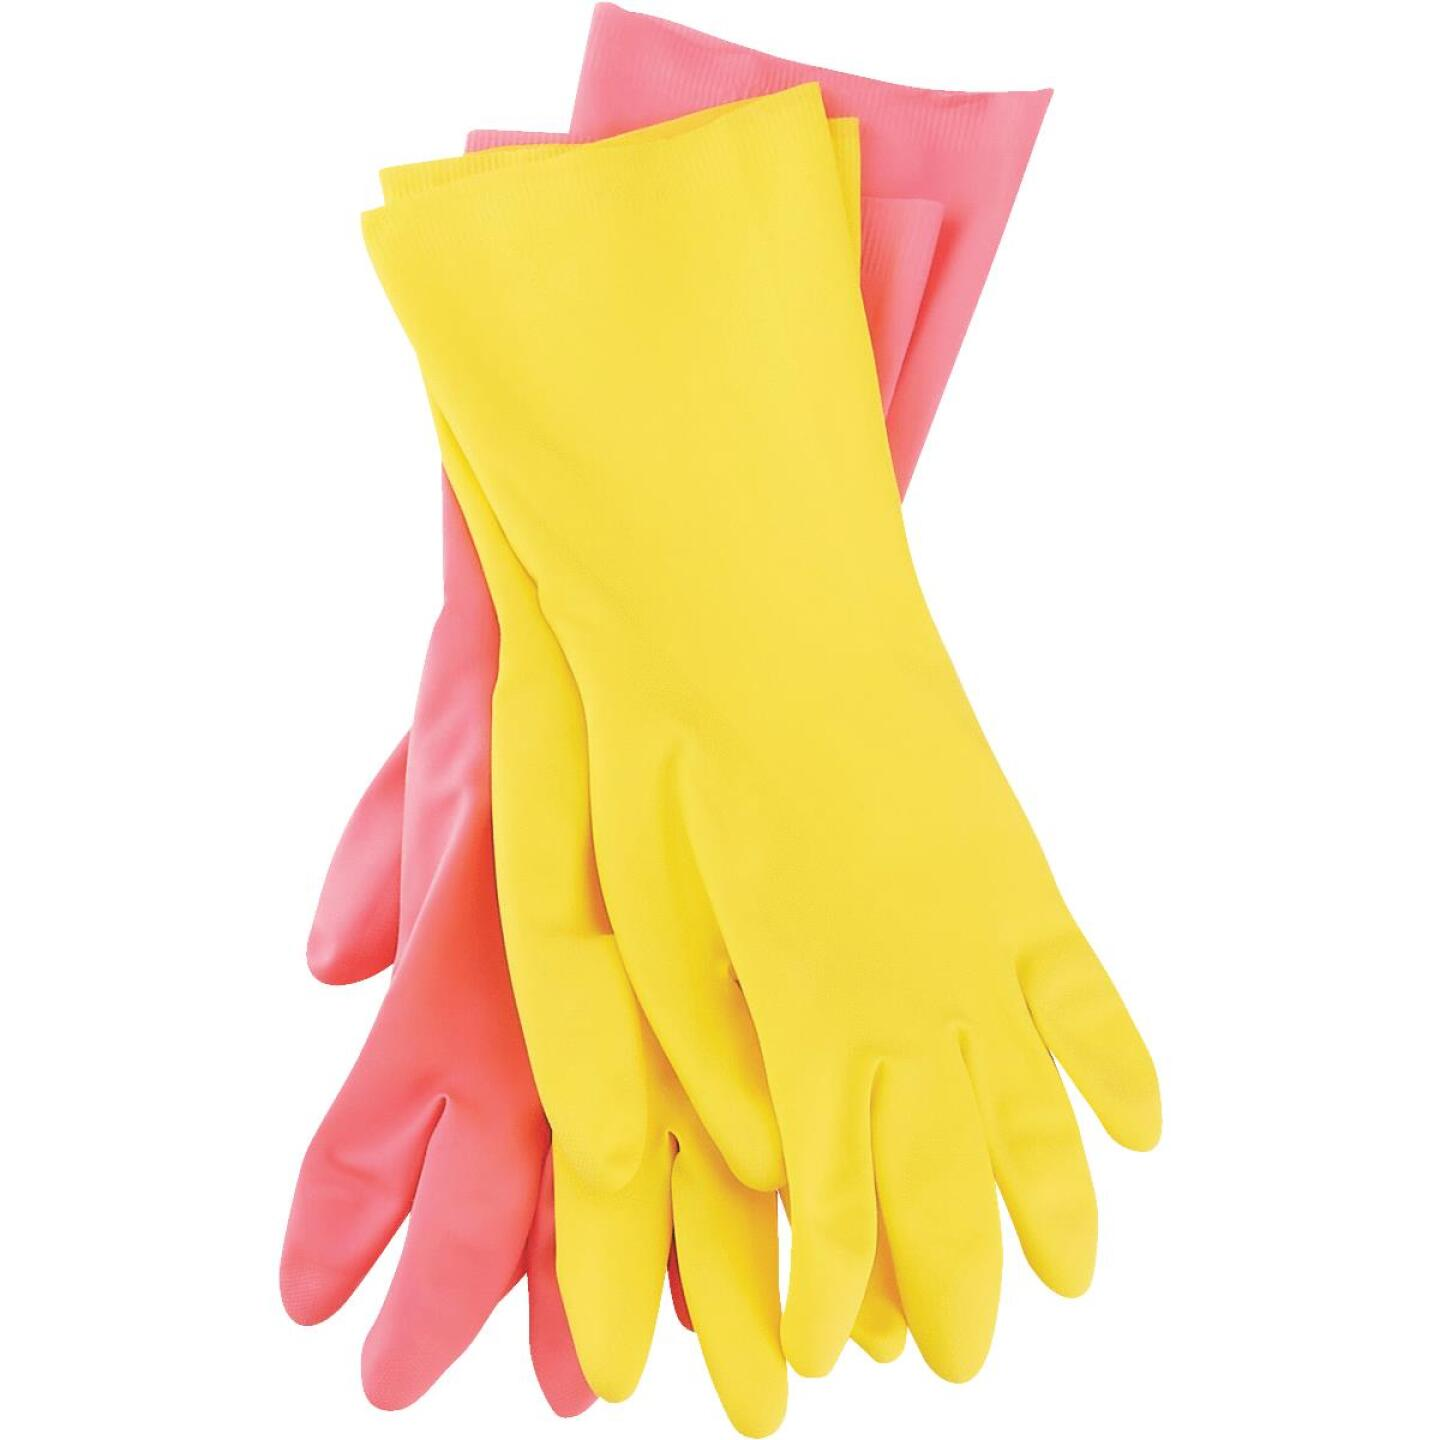 Soft Scrub Small Latex Rubber Glove (2-Pack) Image 3